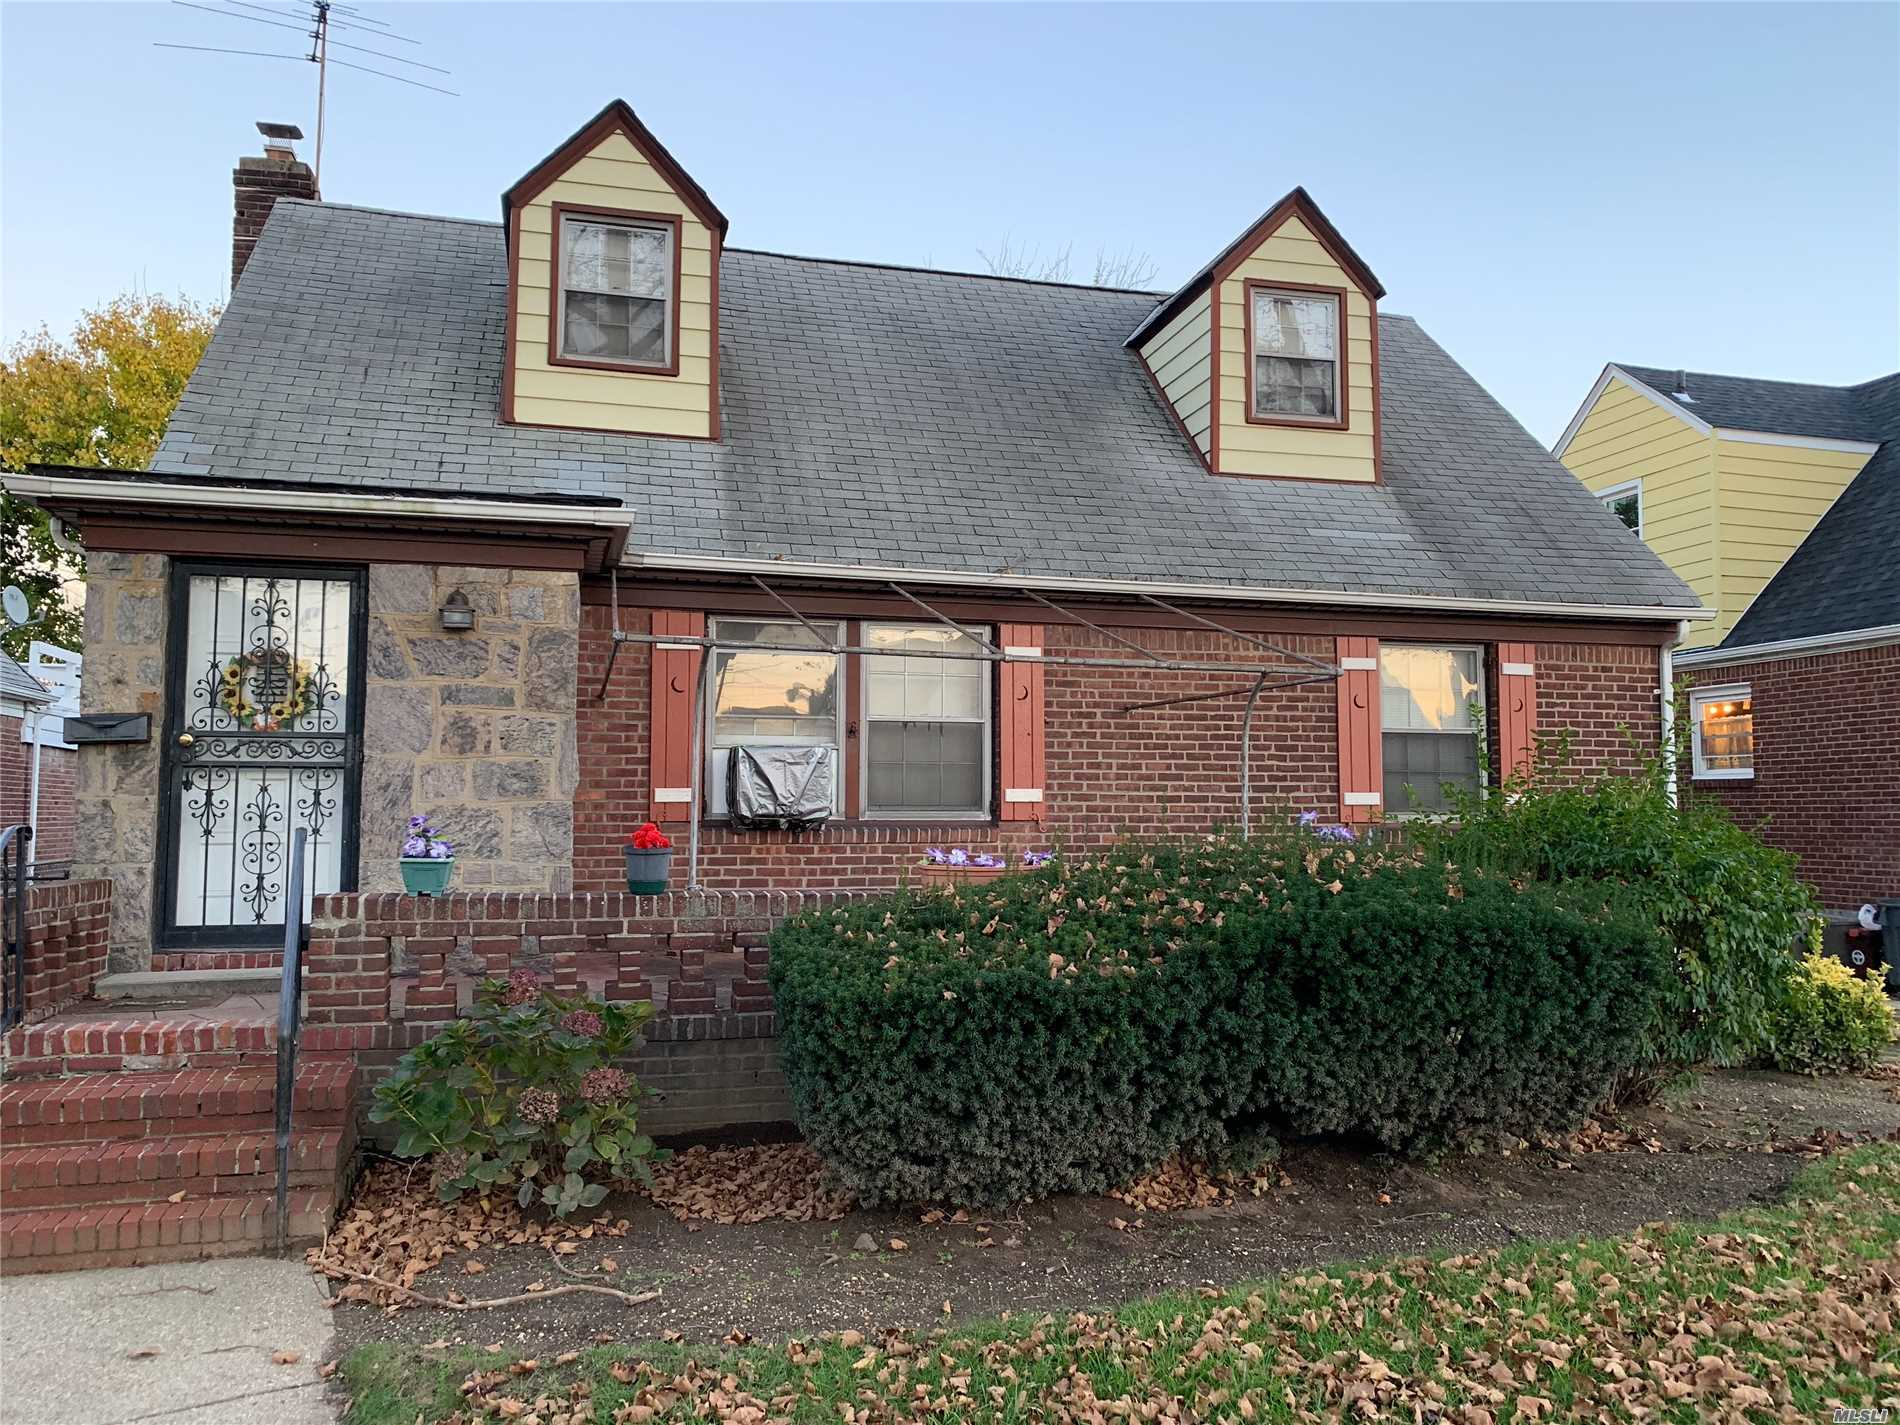 Cape Code Ready To Be Sold With Master Br On The First Floor. The Property Has Original Wood Floors Under Carpet,